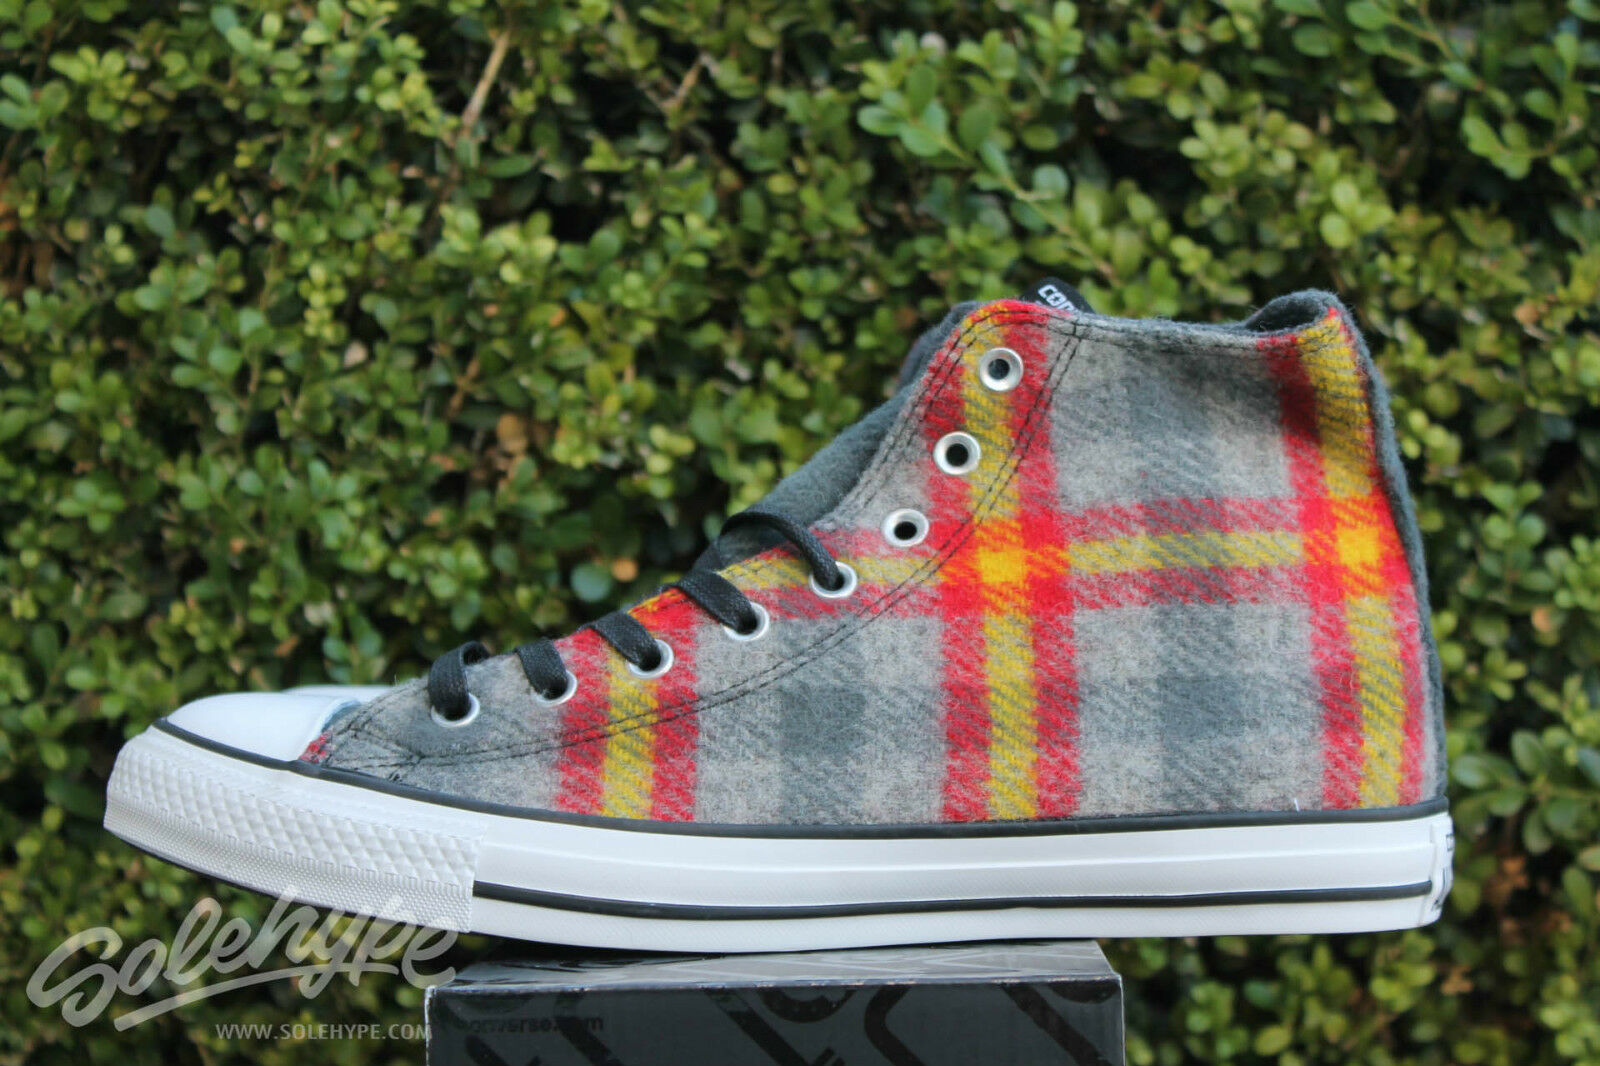 CONVERSE ALL STAR CHUCK TAYLOR WOOLRICH CT HI SZ 7.5 THUNDER YELLOW RED 149456C